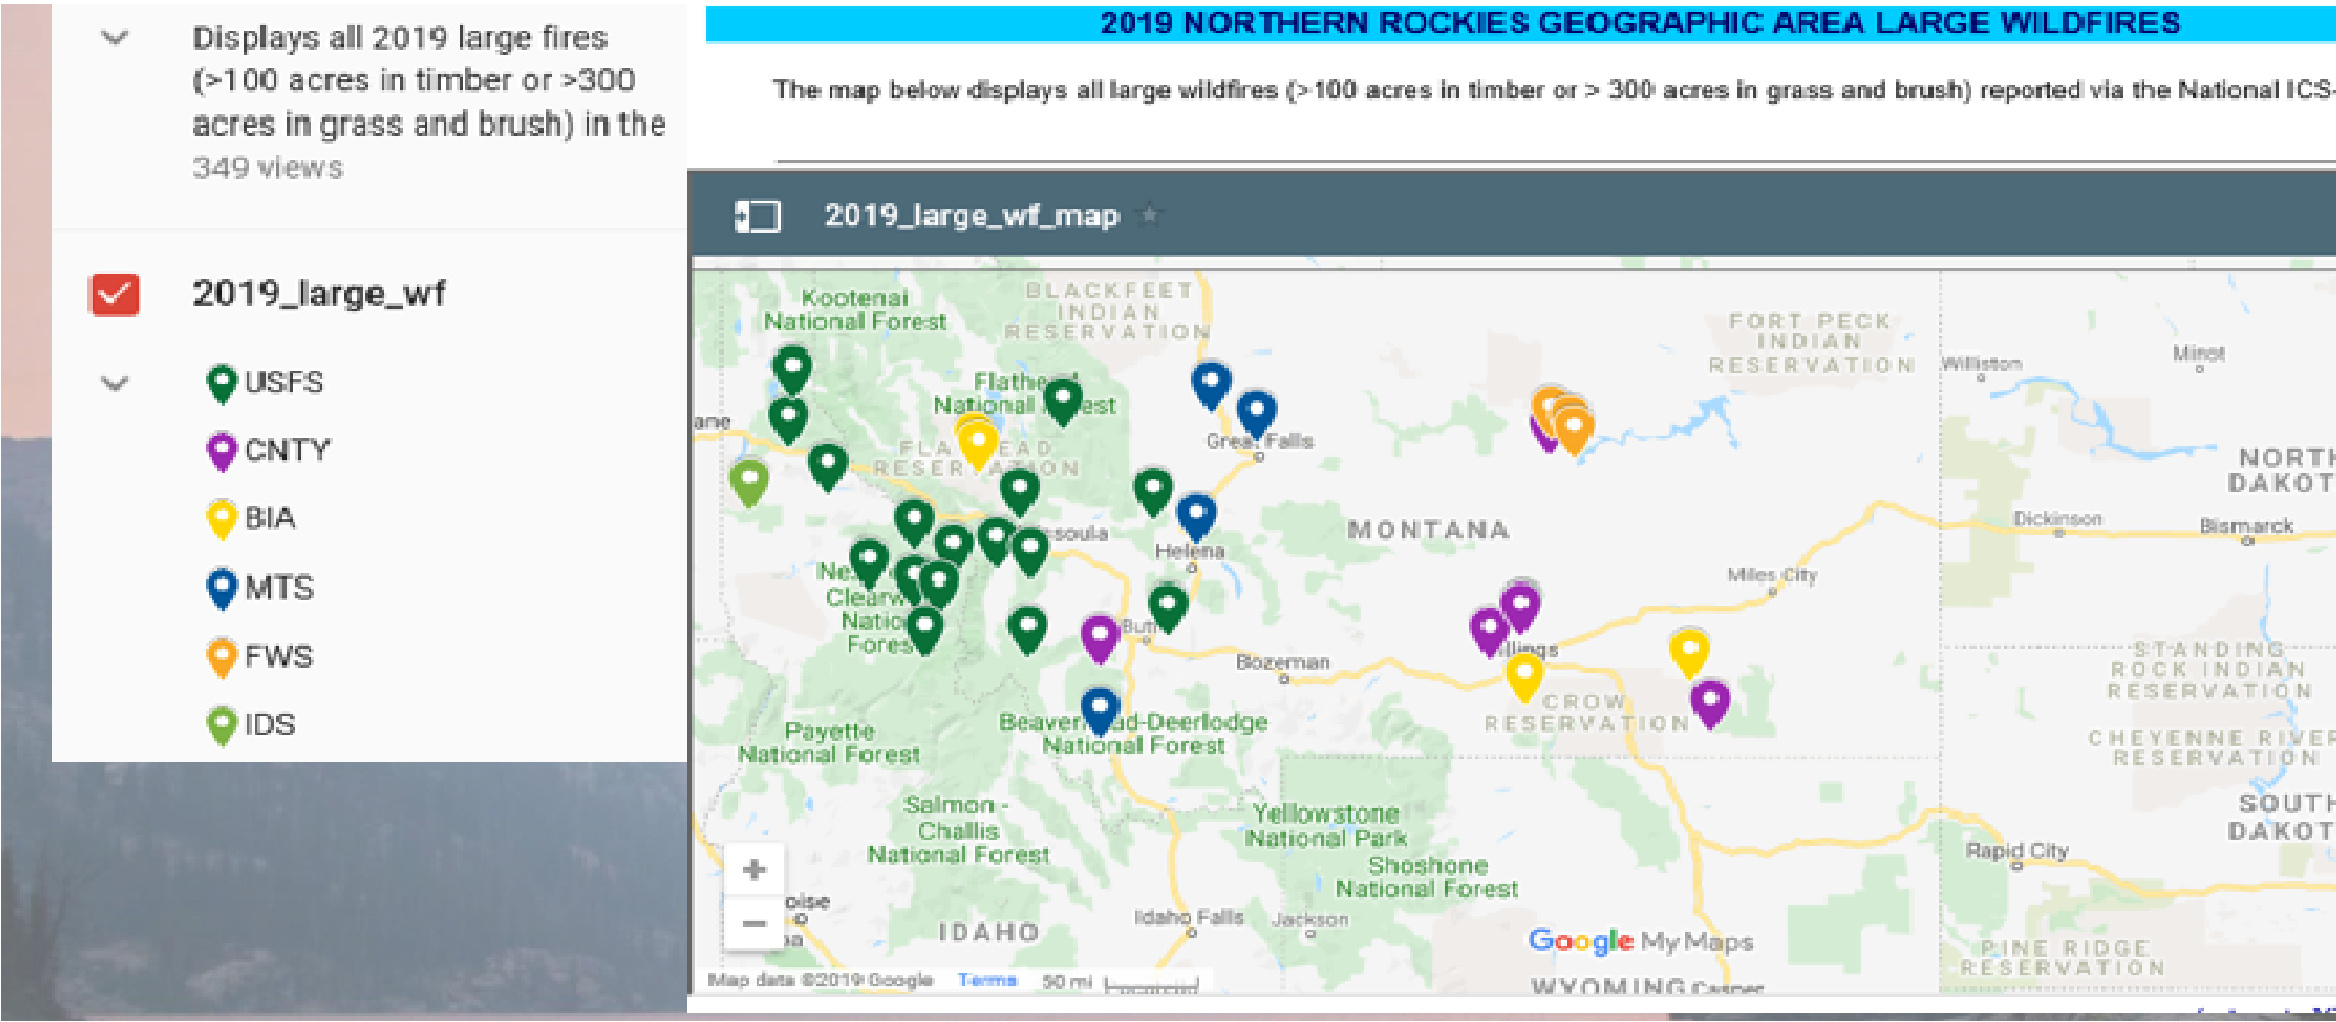 Map showing 2019 fire distribution in Montana and Idaho